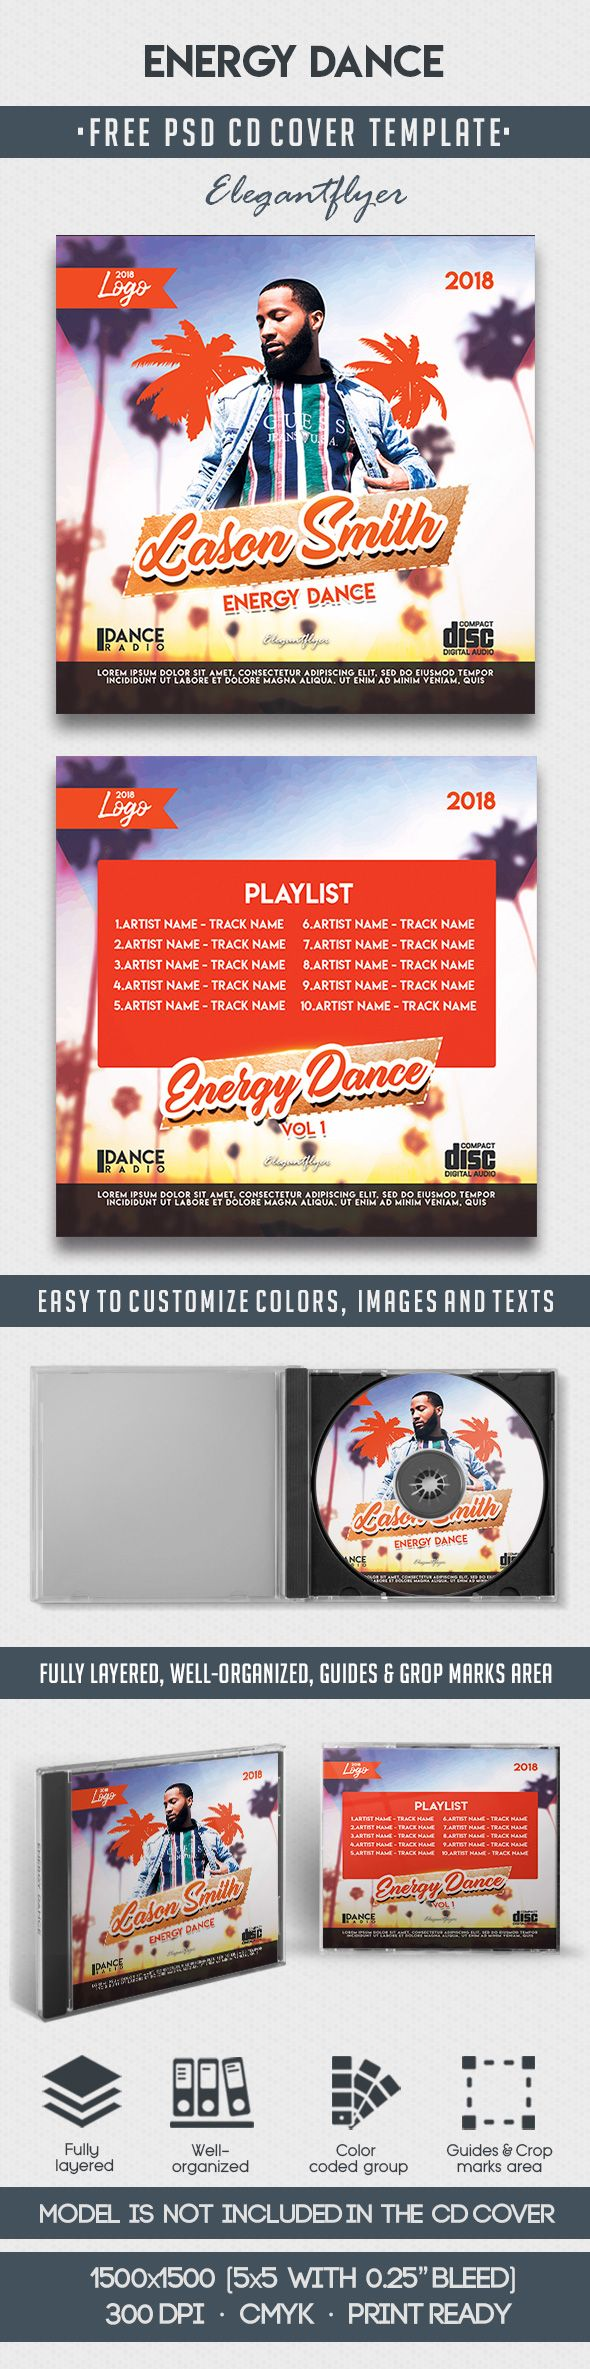 Energy Dance – Free CD Cover PSD Template